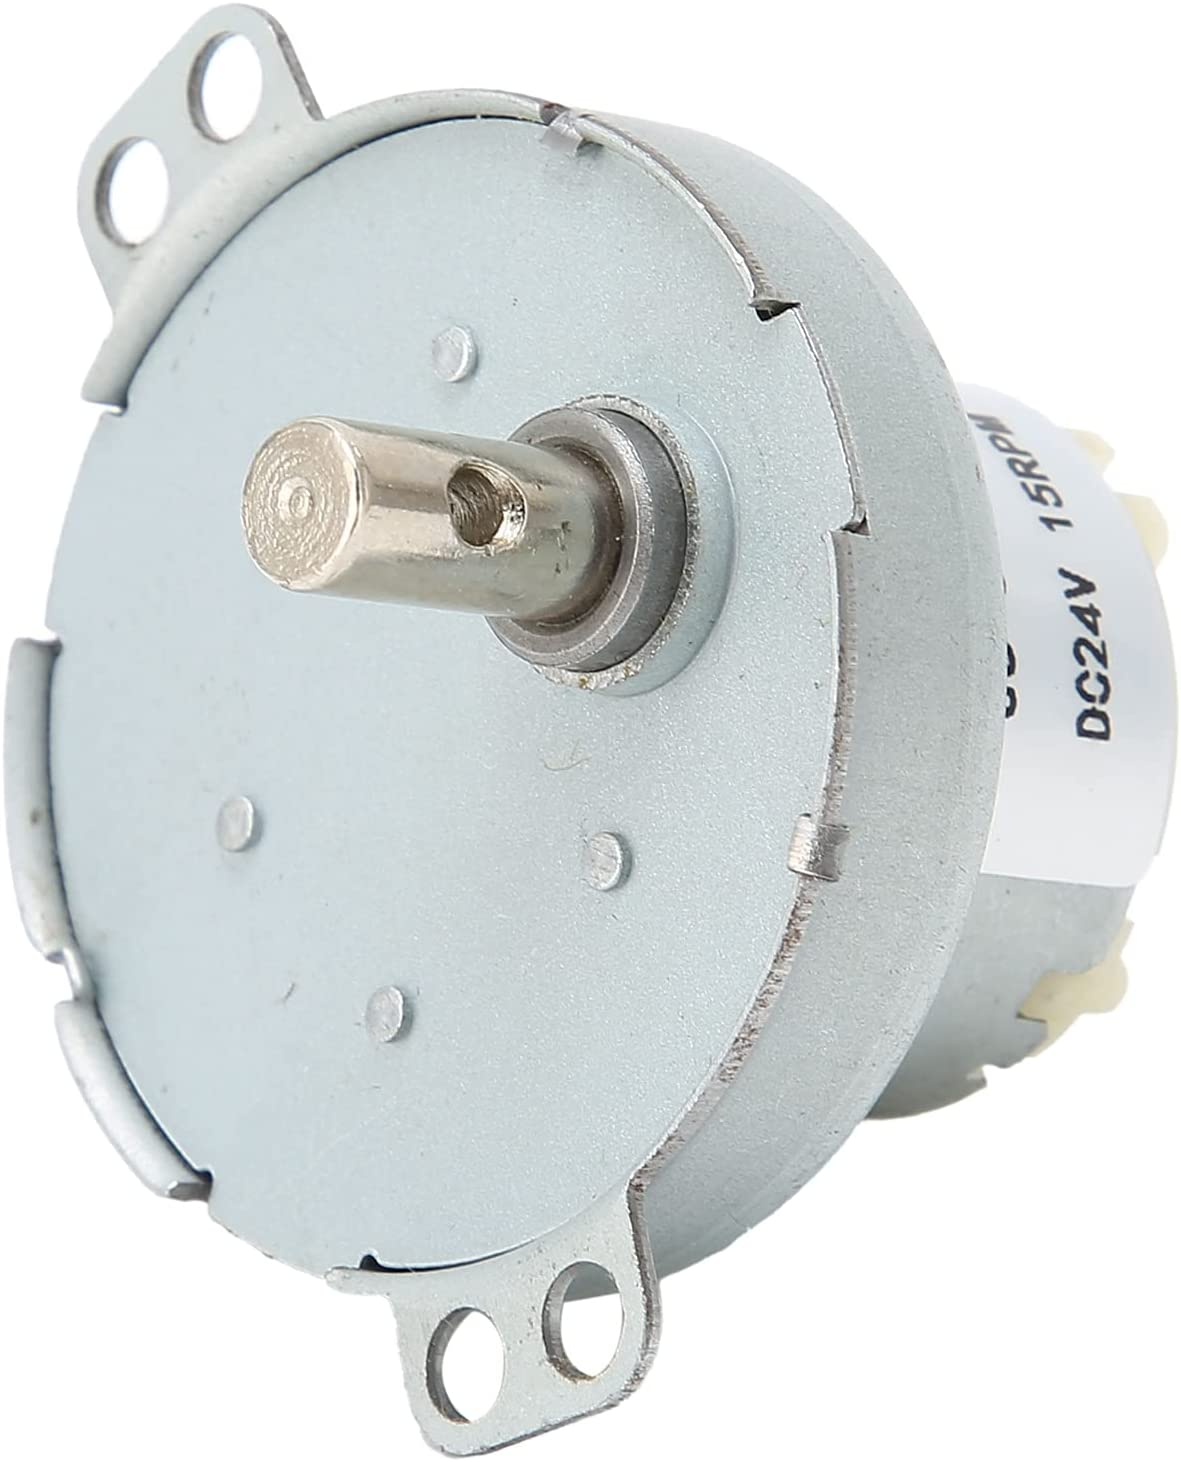 Synchronous Motor V Cup Turner Large discharge Max 70% OFF sale Household App Electric for